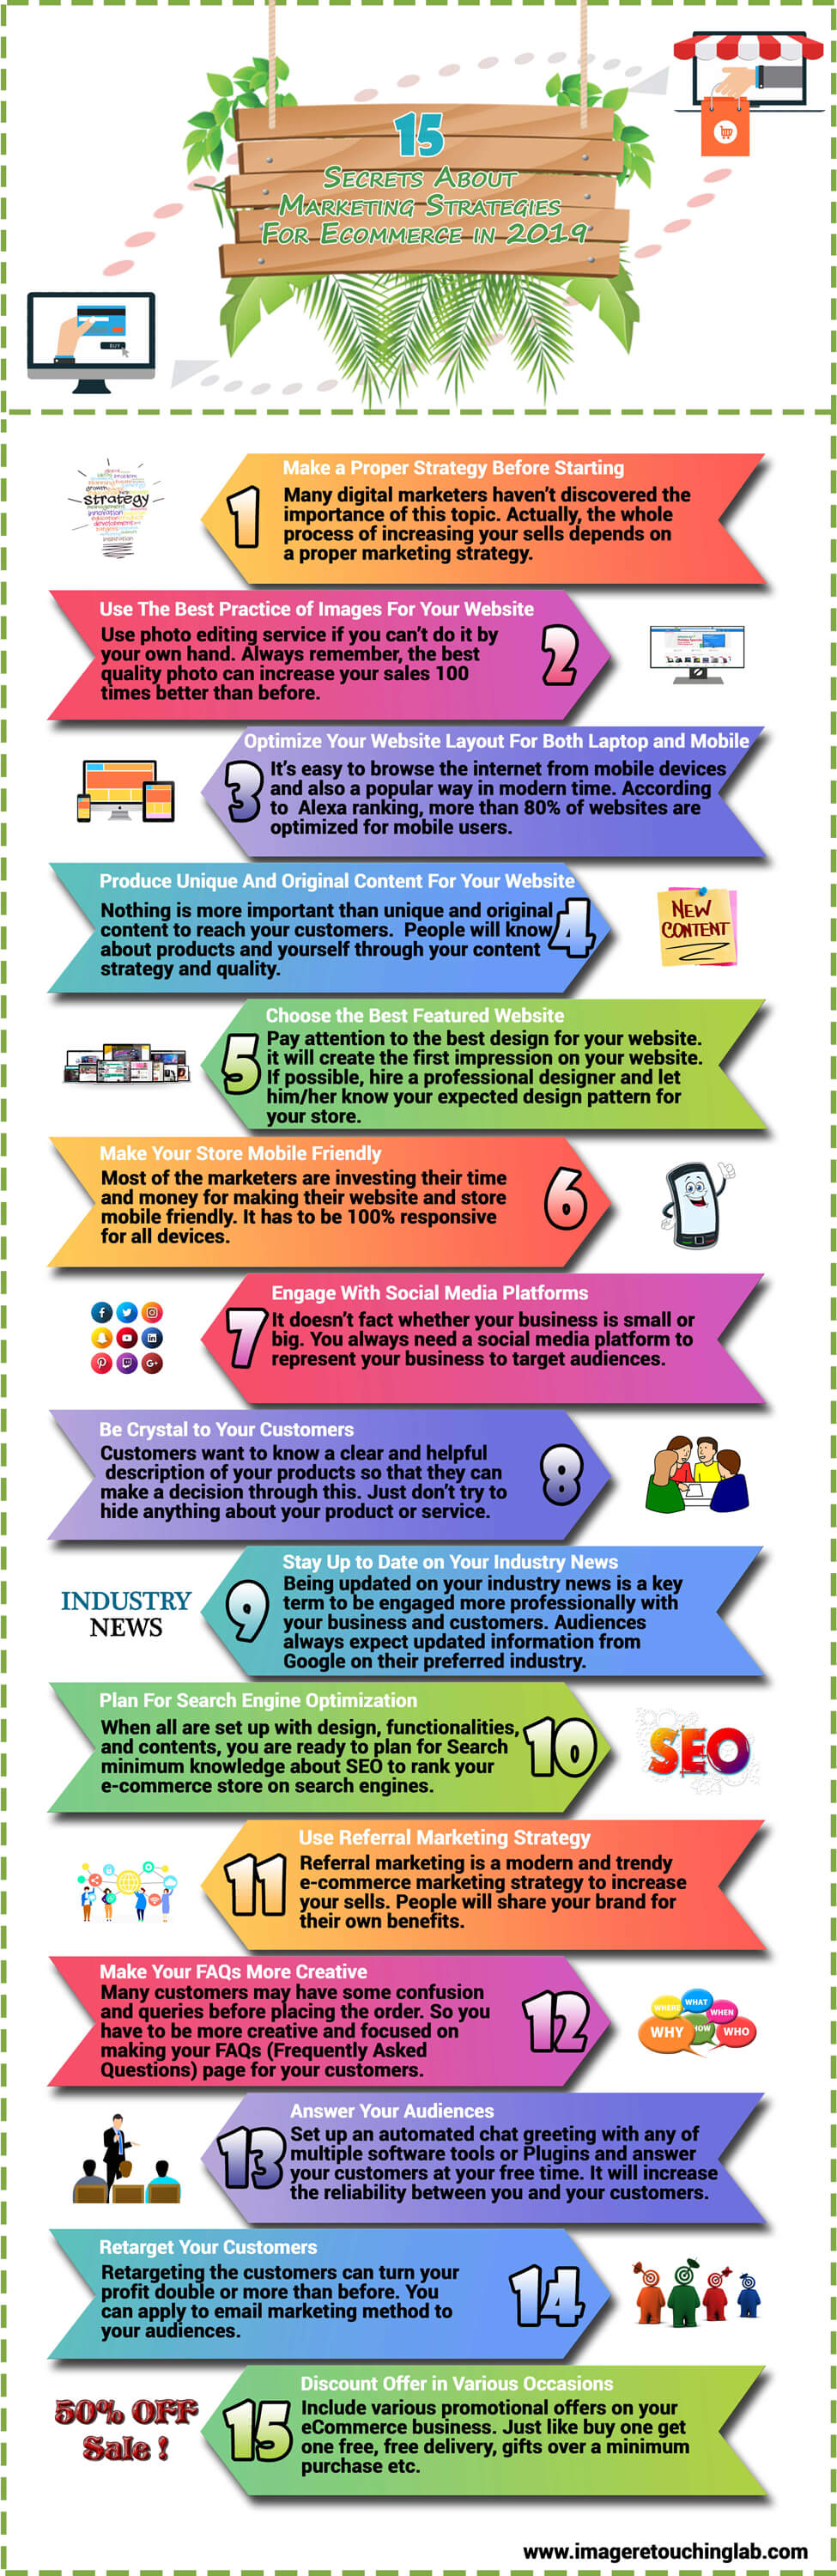 e-commerce-marketing-tips-infographic-plaza